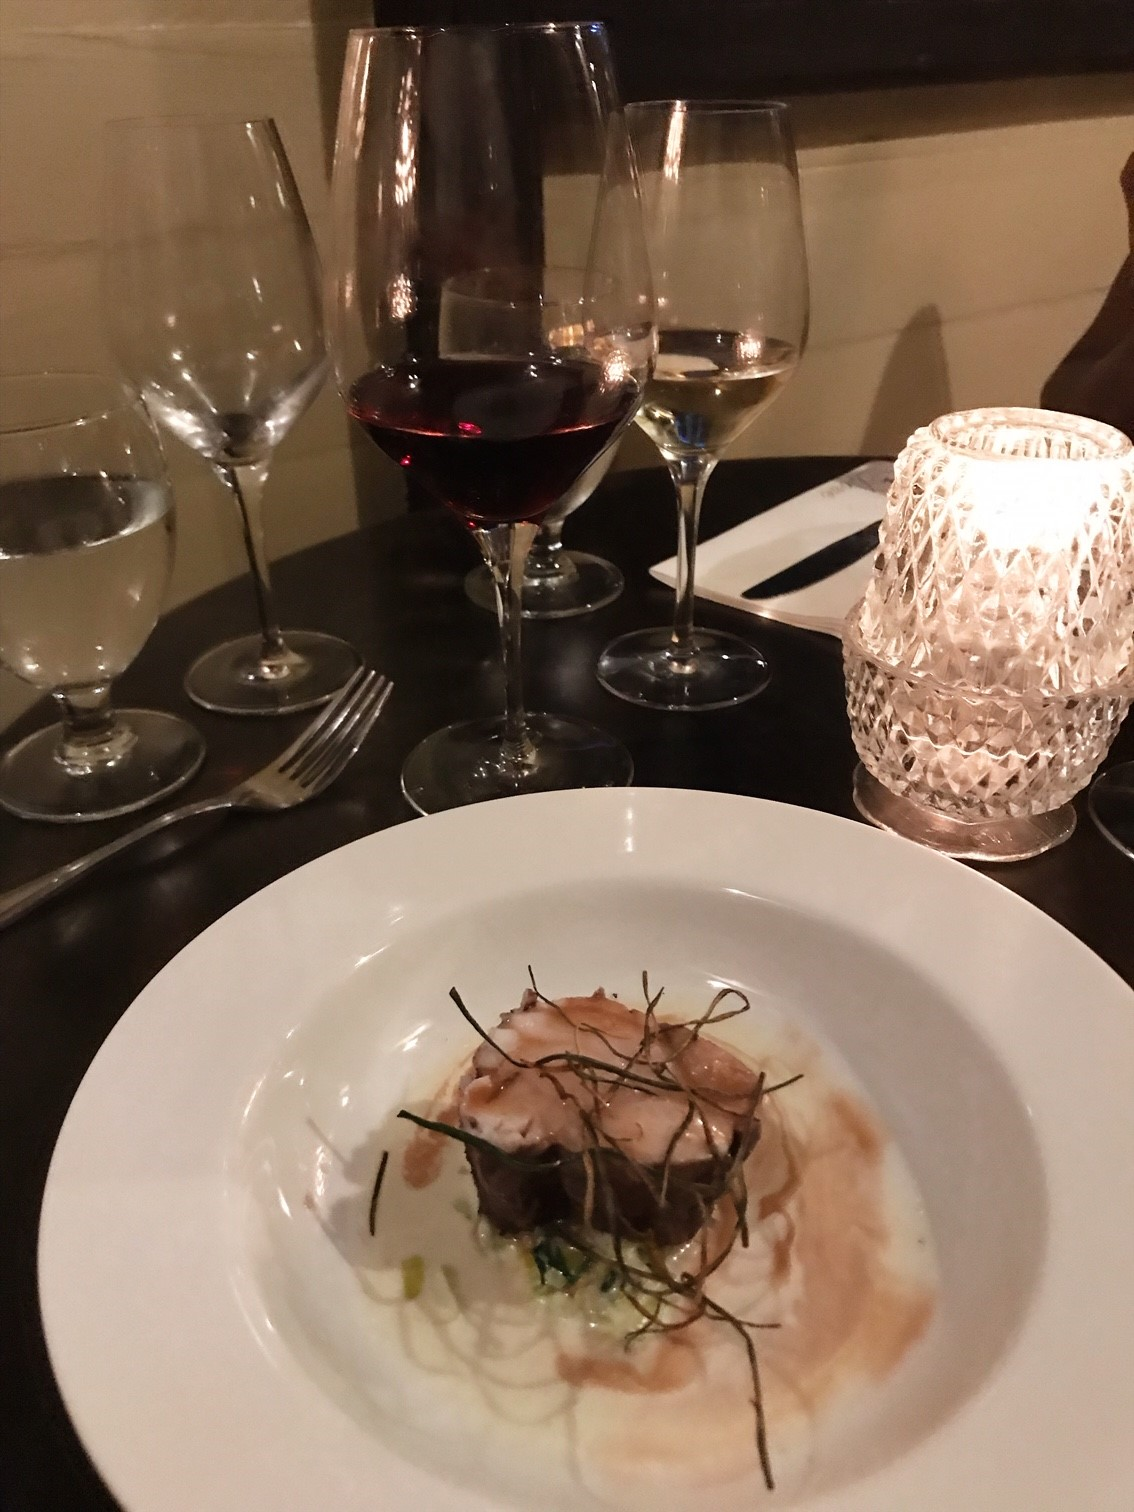 Elena Walch Wine Tasting at the Dove Restaurant - Fourth Course - Red Wine poached Monk Fish